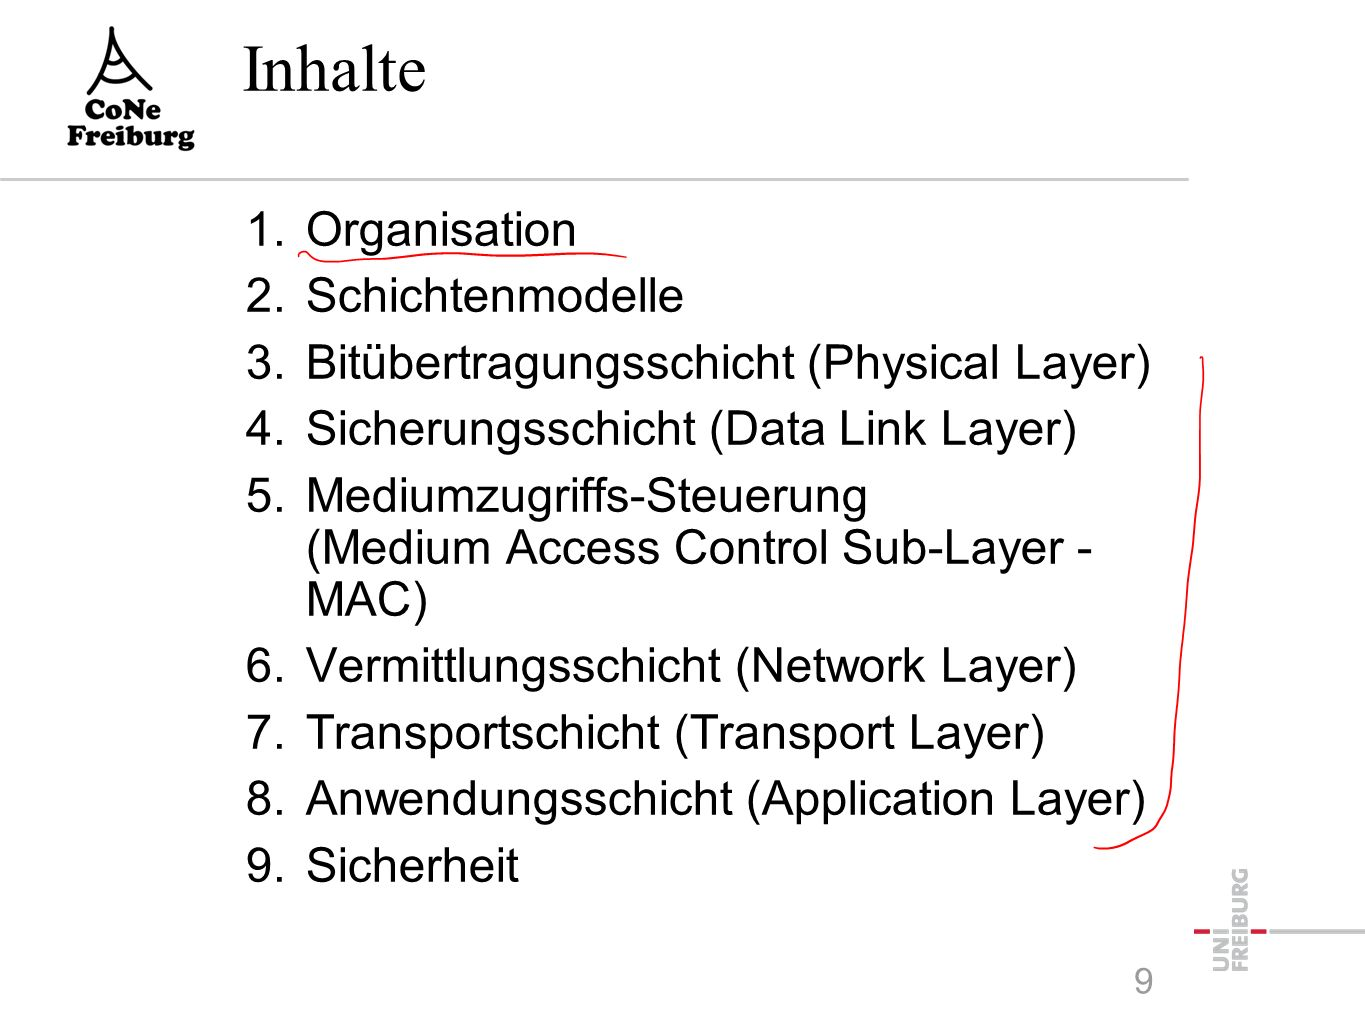 Inhalte 1.Organisation 2.Schichtenmodelle 3.Bitübertragungsschicht (Physical Layer) 4.Sicherungsschicht (Data Link Layer) 5.Mediumzugriffs-Steuerung (Medium Access Control Sub-Layer - MAC) 6.Vermittlungsschicht (Network Layer) 7.Transportschicht (Transport Layer) 8.Anwendungsschicht (Application Layer) 9.Sicherheit 9